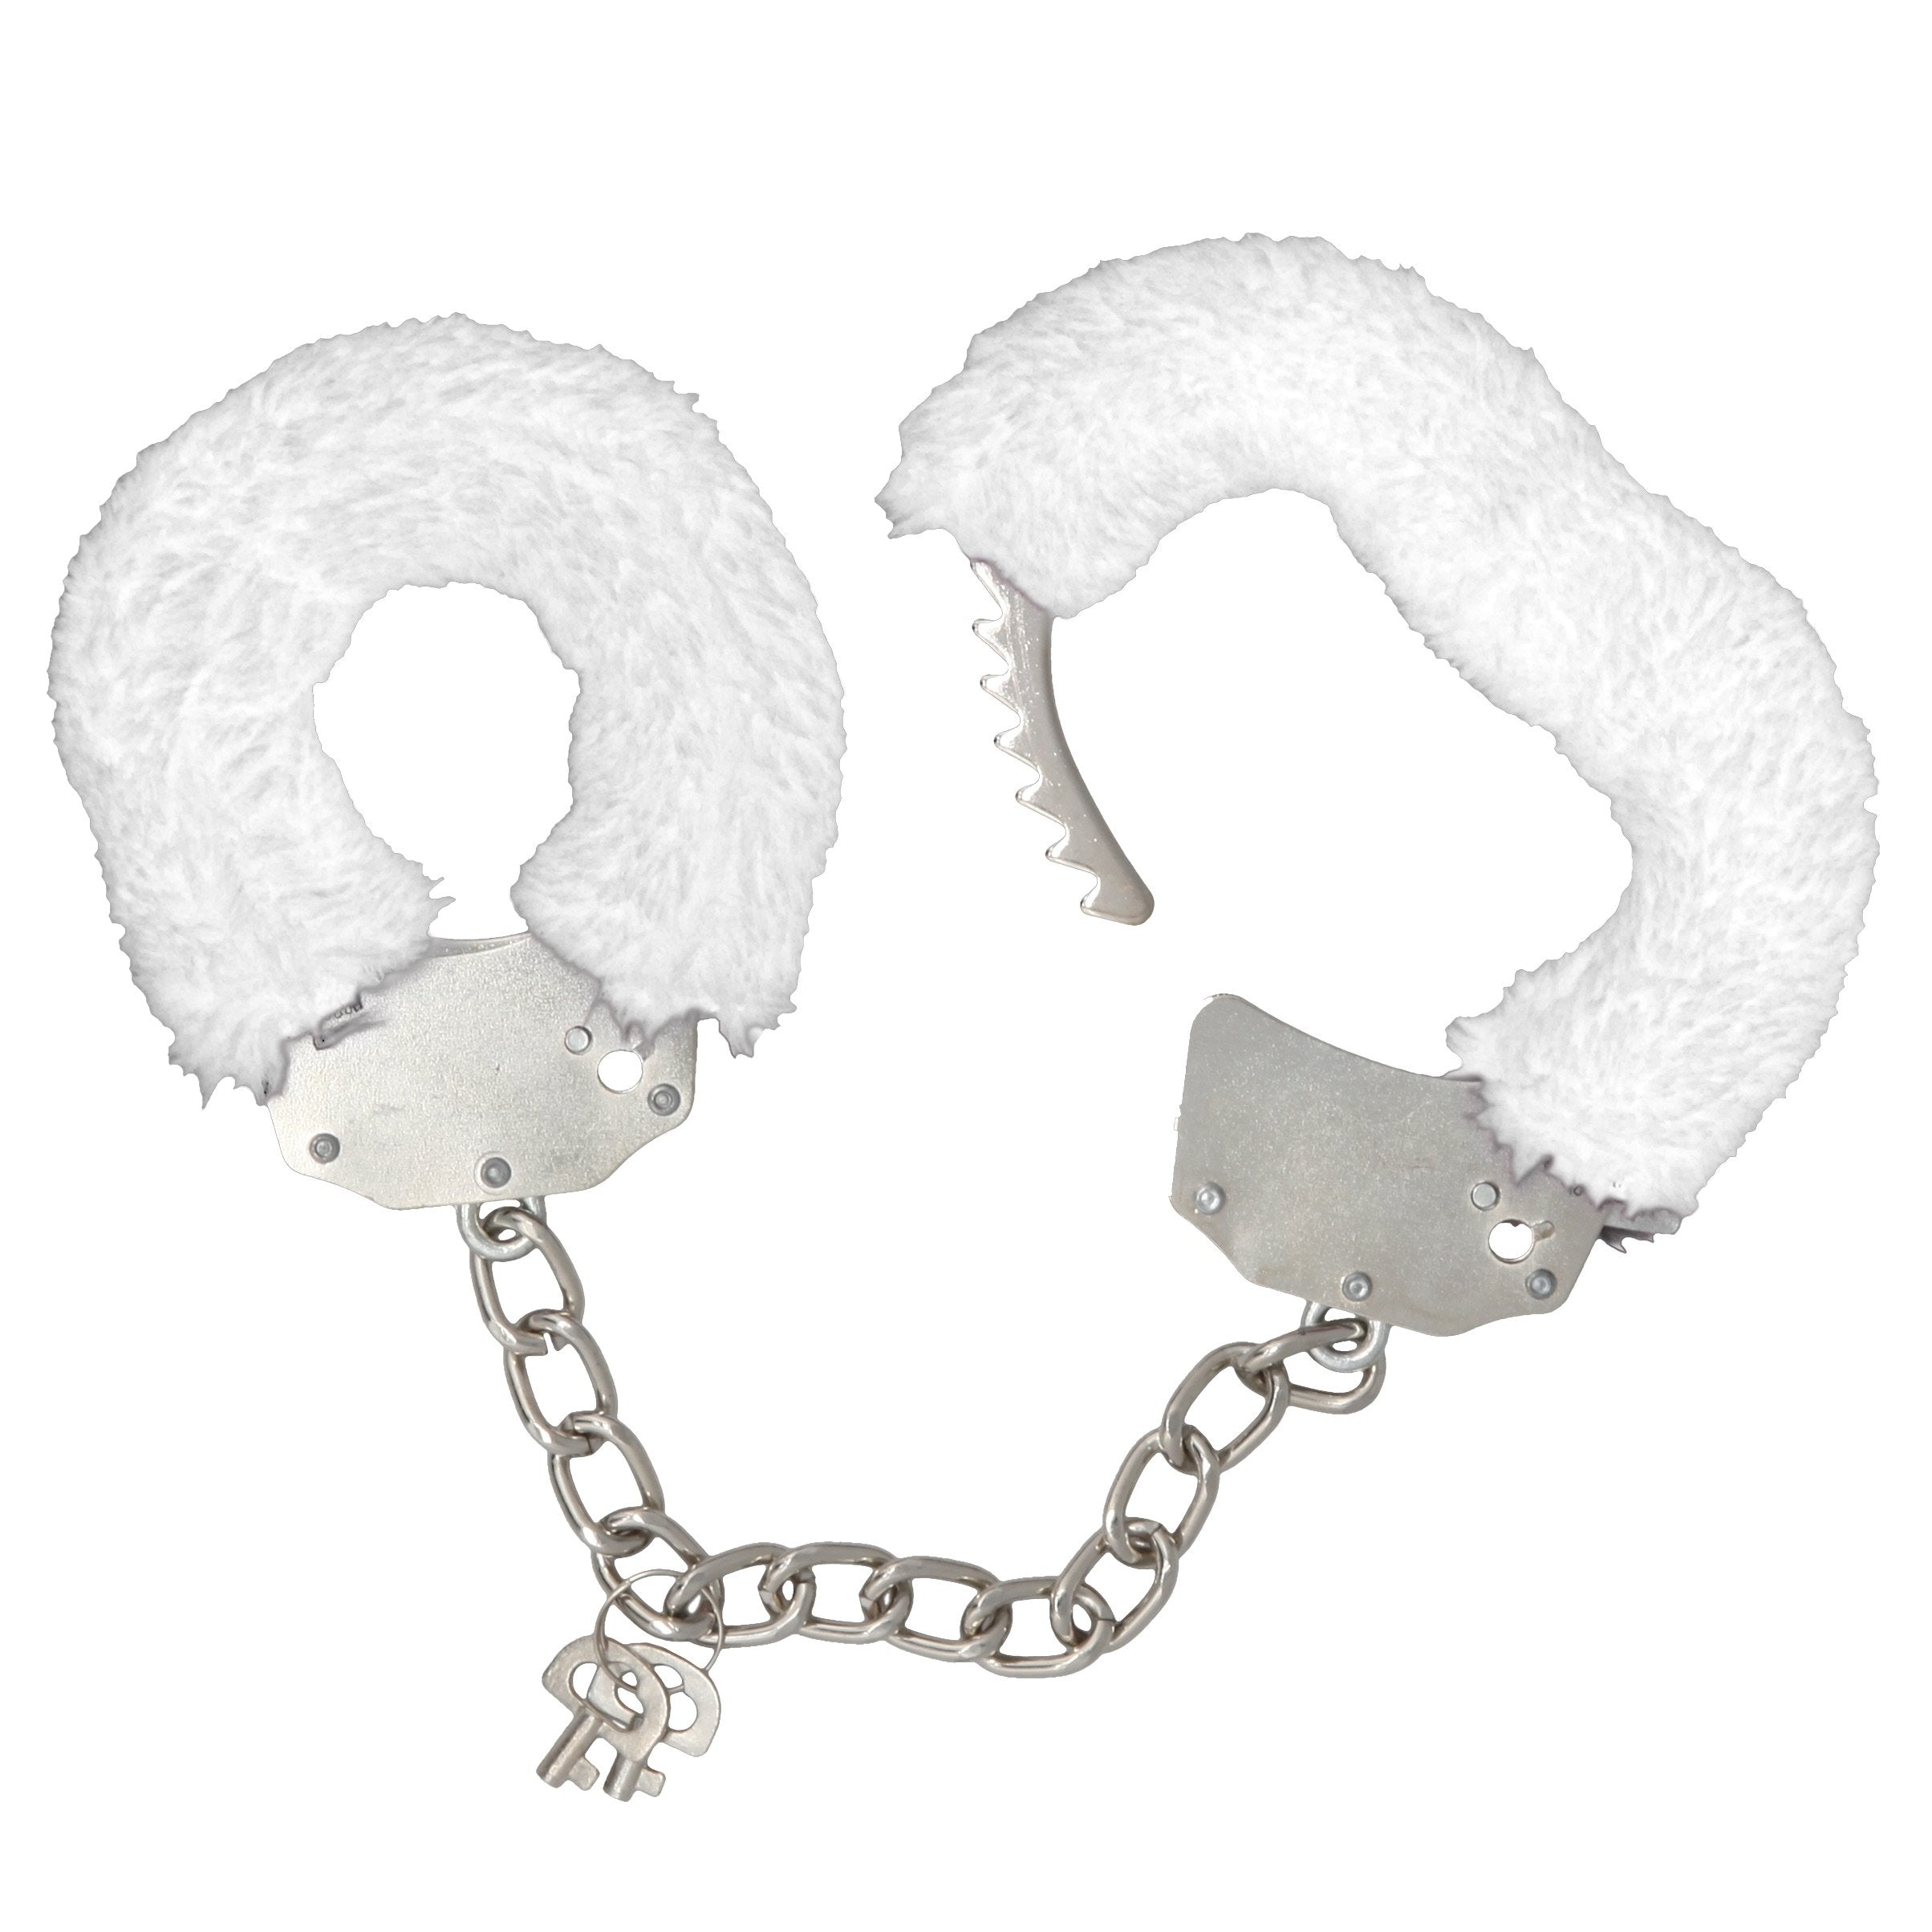 Consent and Comply Furry Cuffs - White